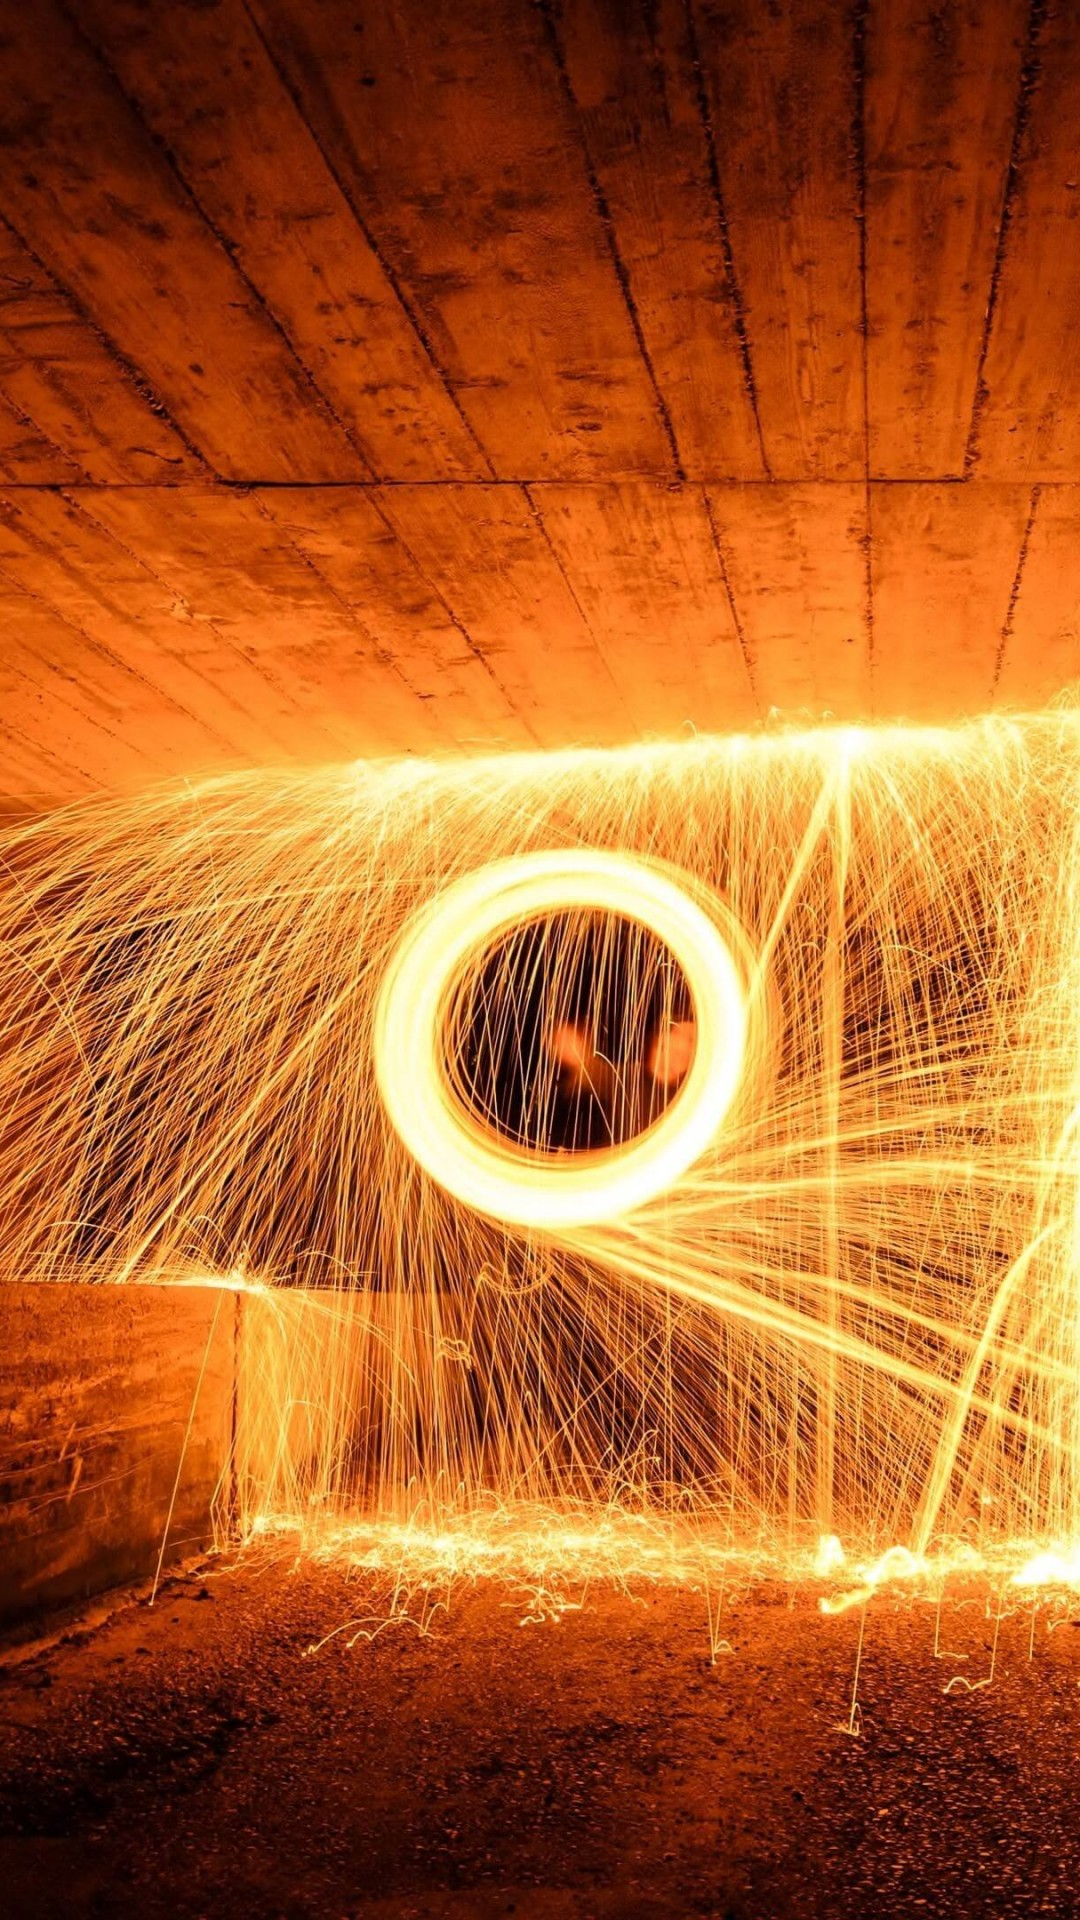 Wire Wool Long Exposure Wallpaper for HTC One